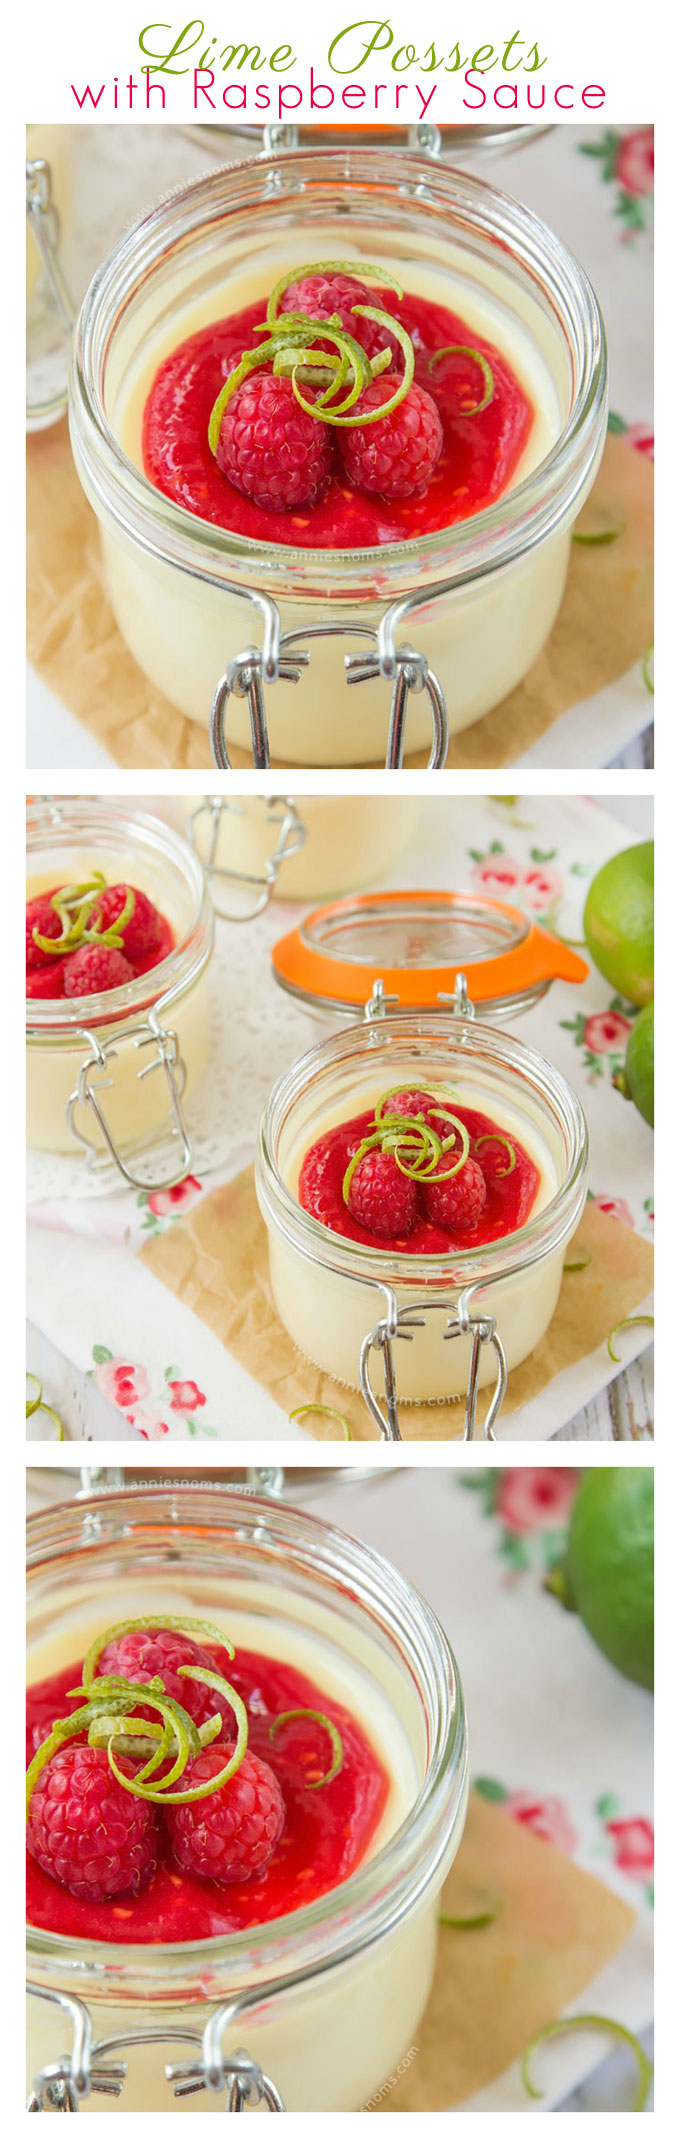 These Lime Possets are velvety smooth, creamy and filled with fresh, tart lime juice. Topped with a fresh no-cook raspberry sauce and fresh raspberries, these are easy to make, yet totally divine!